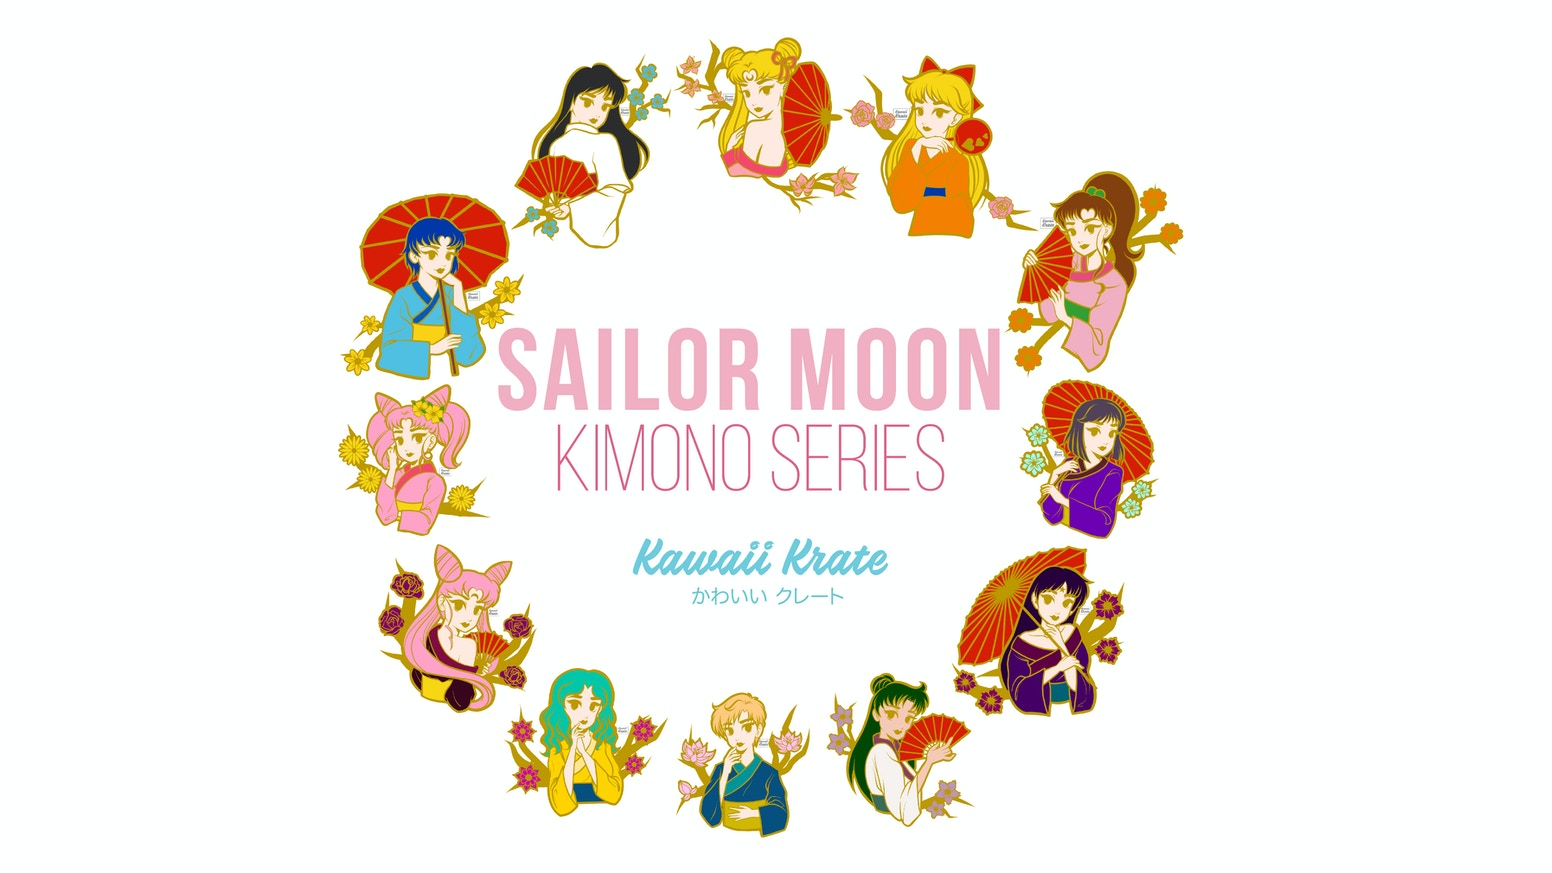 Kawaii Krate's Kimono Series Pin Designs of Sailor Moon Characters